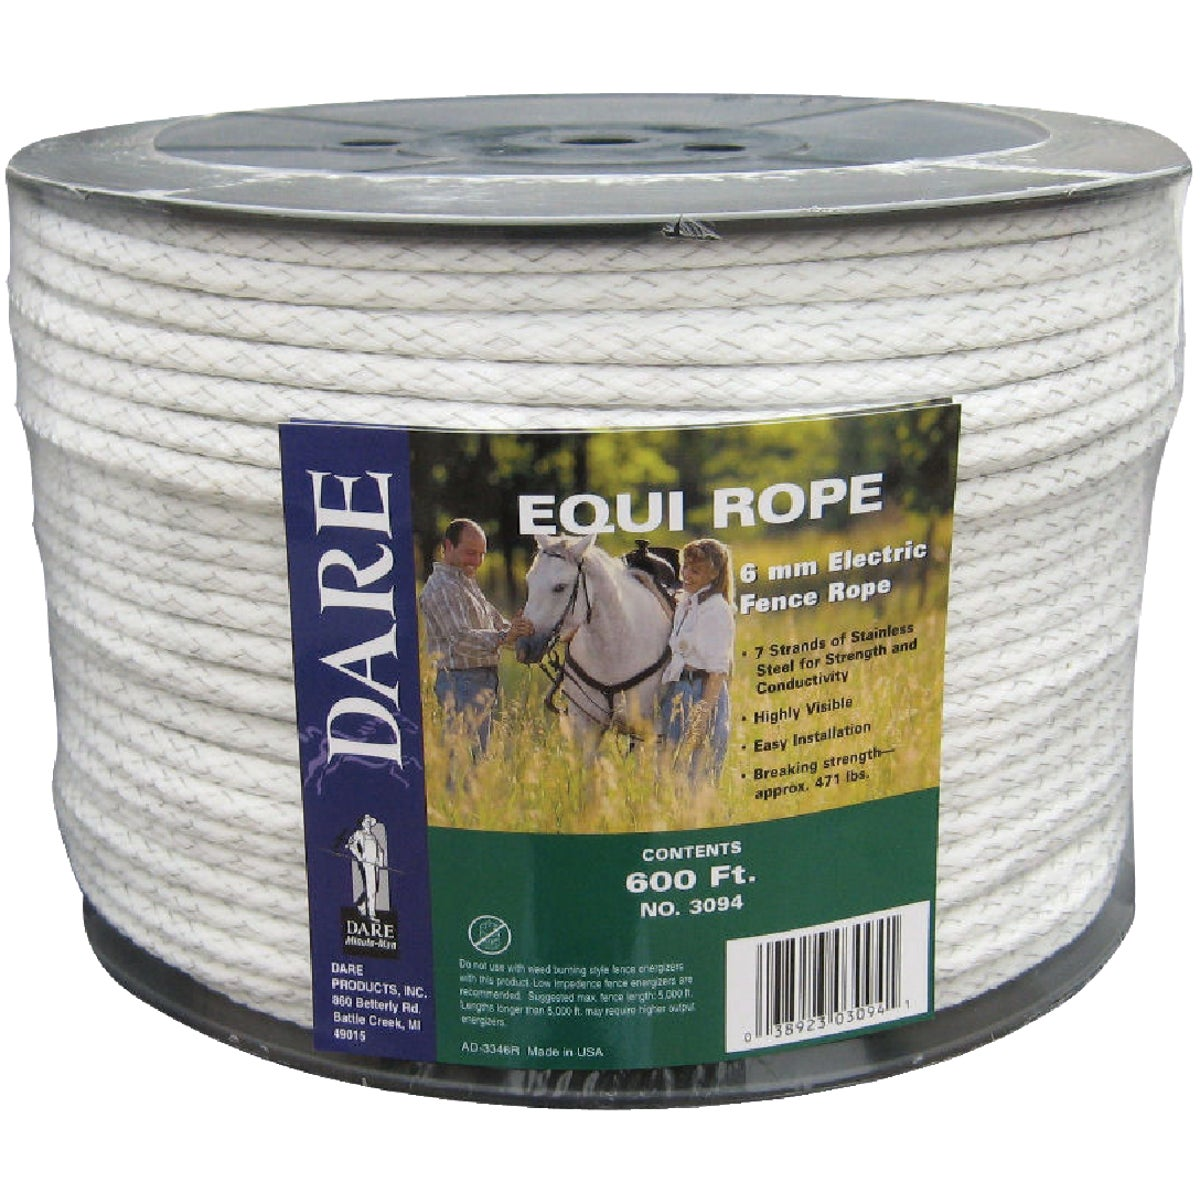 6MMX600' EQUINE POLYROPE - 3094 by Dare Products Inc